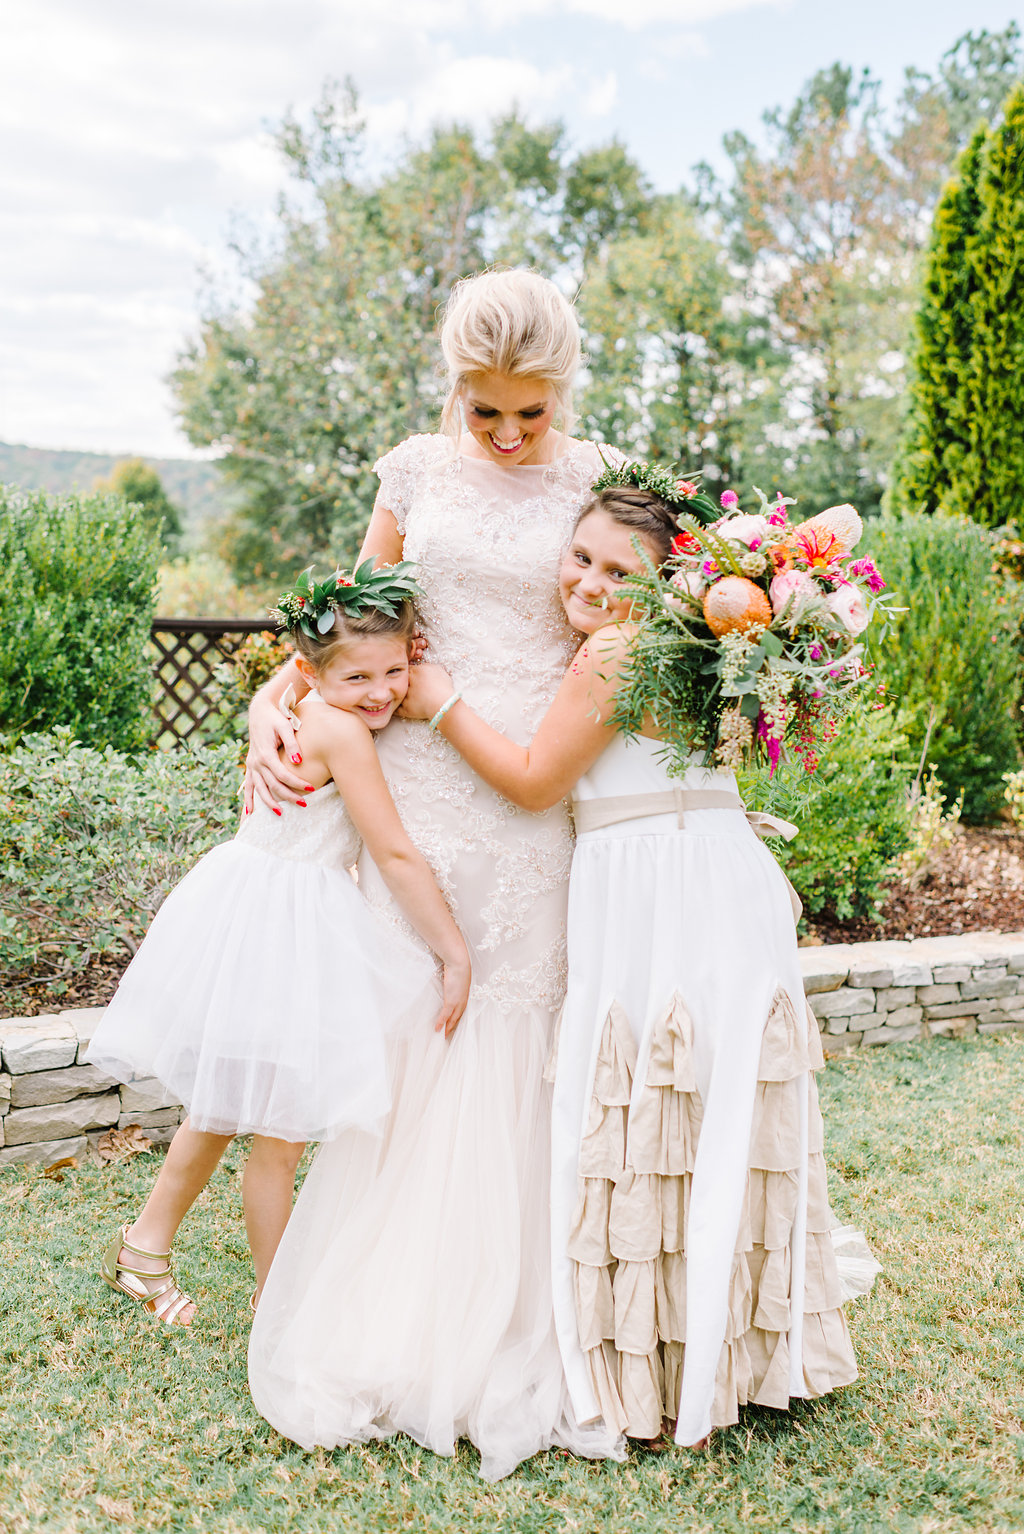 flower girls - photo by Cathrine Taylor Photography http://ruffledblog.com/colorful-alabama-wedding-with-desert-accents